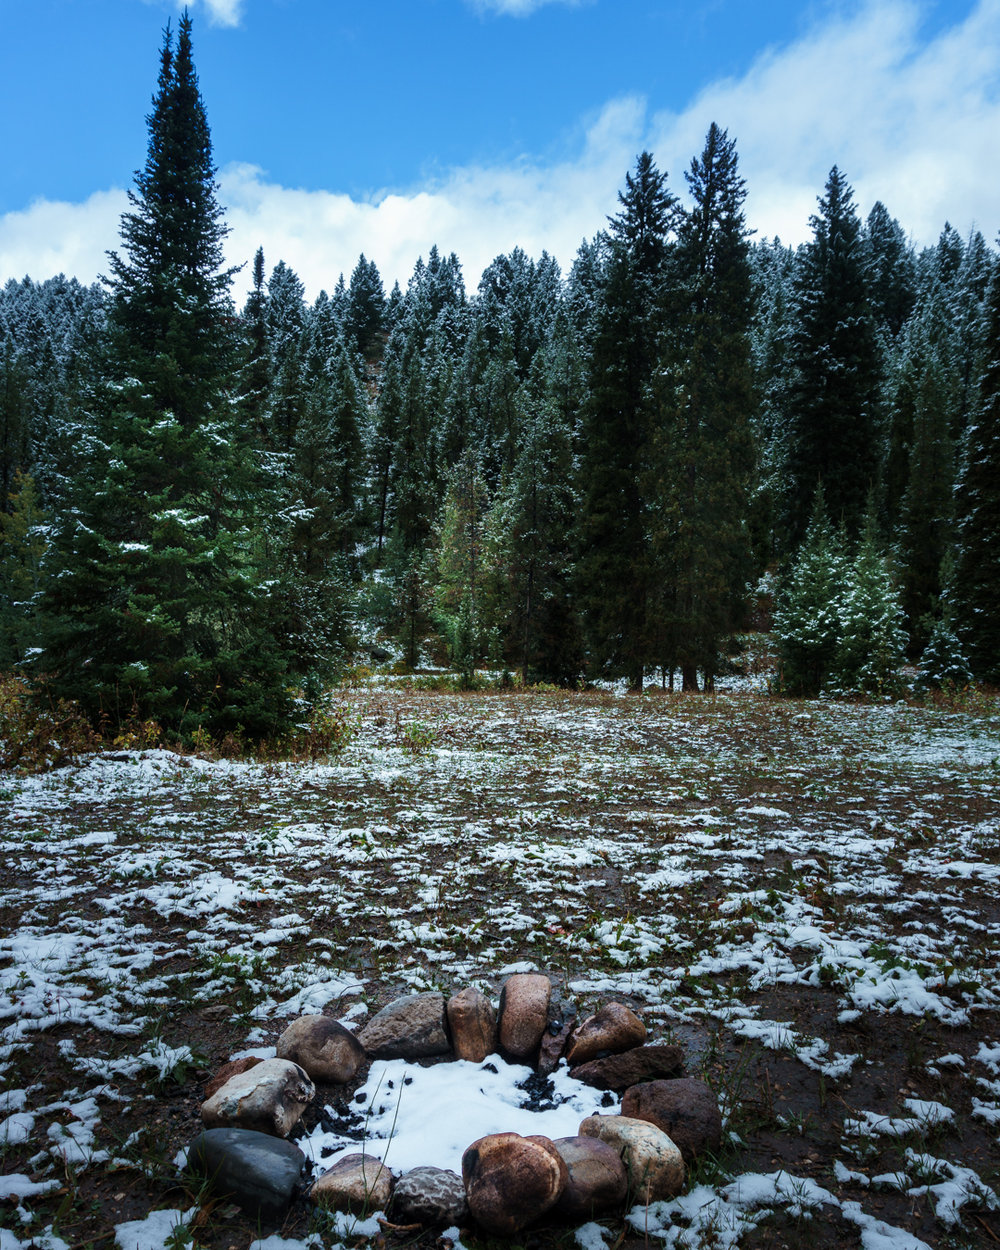 When you are driving US Forest Service roads, you will come across fire rings and know that you have likely found a great boondocking spot. This site on the west side of the Grand Tetons was one of our favorites.